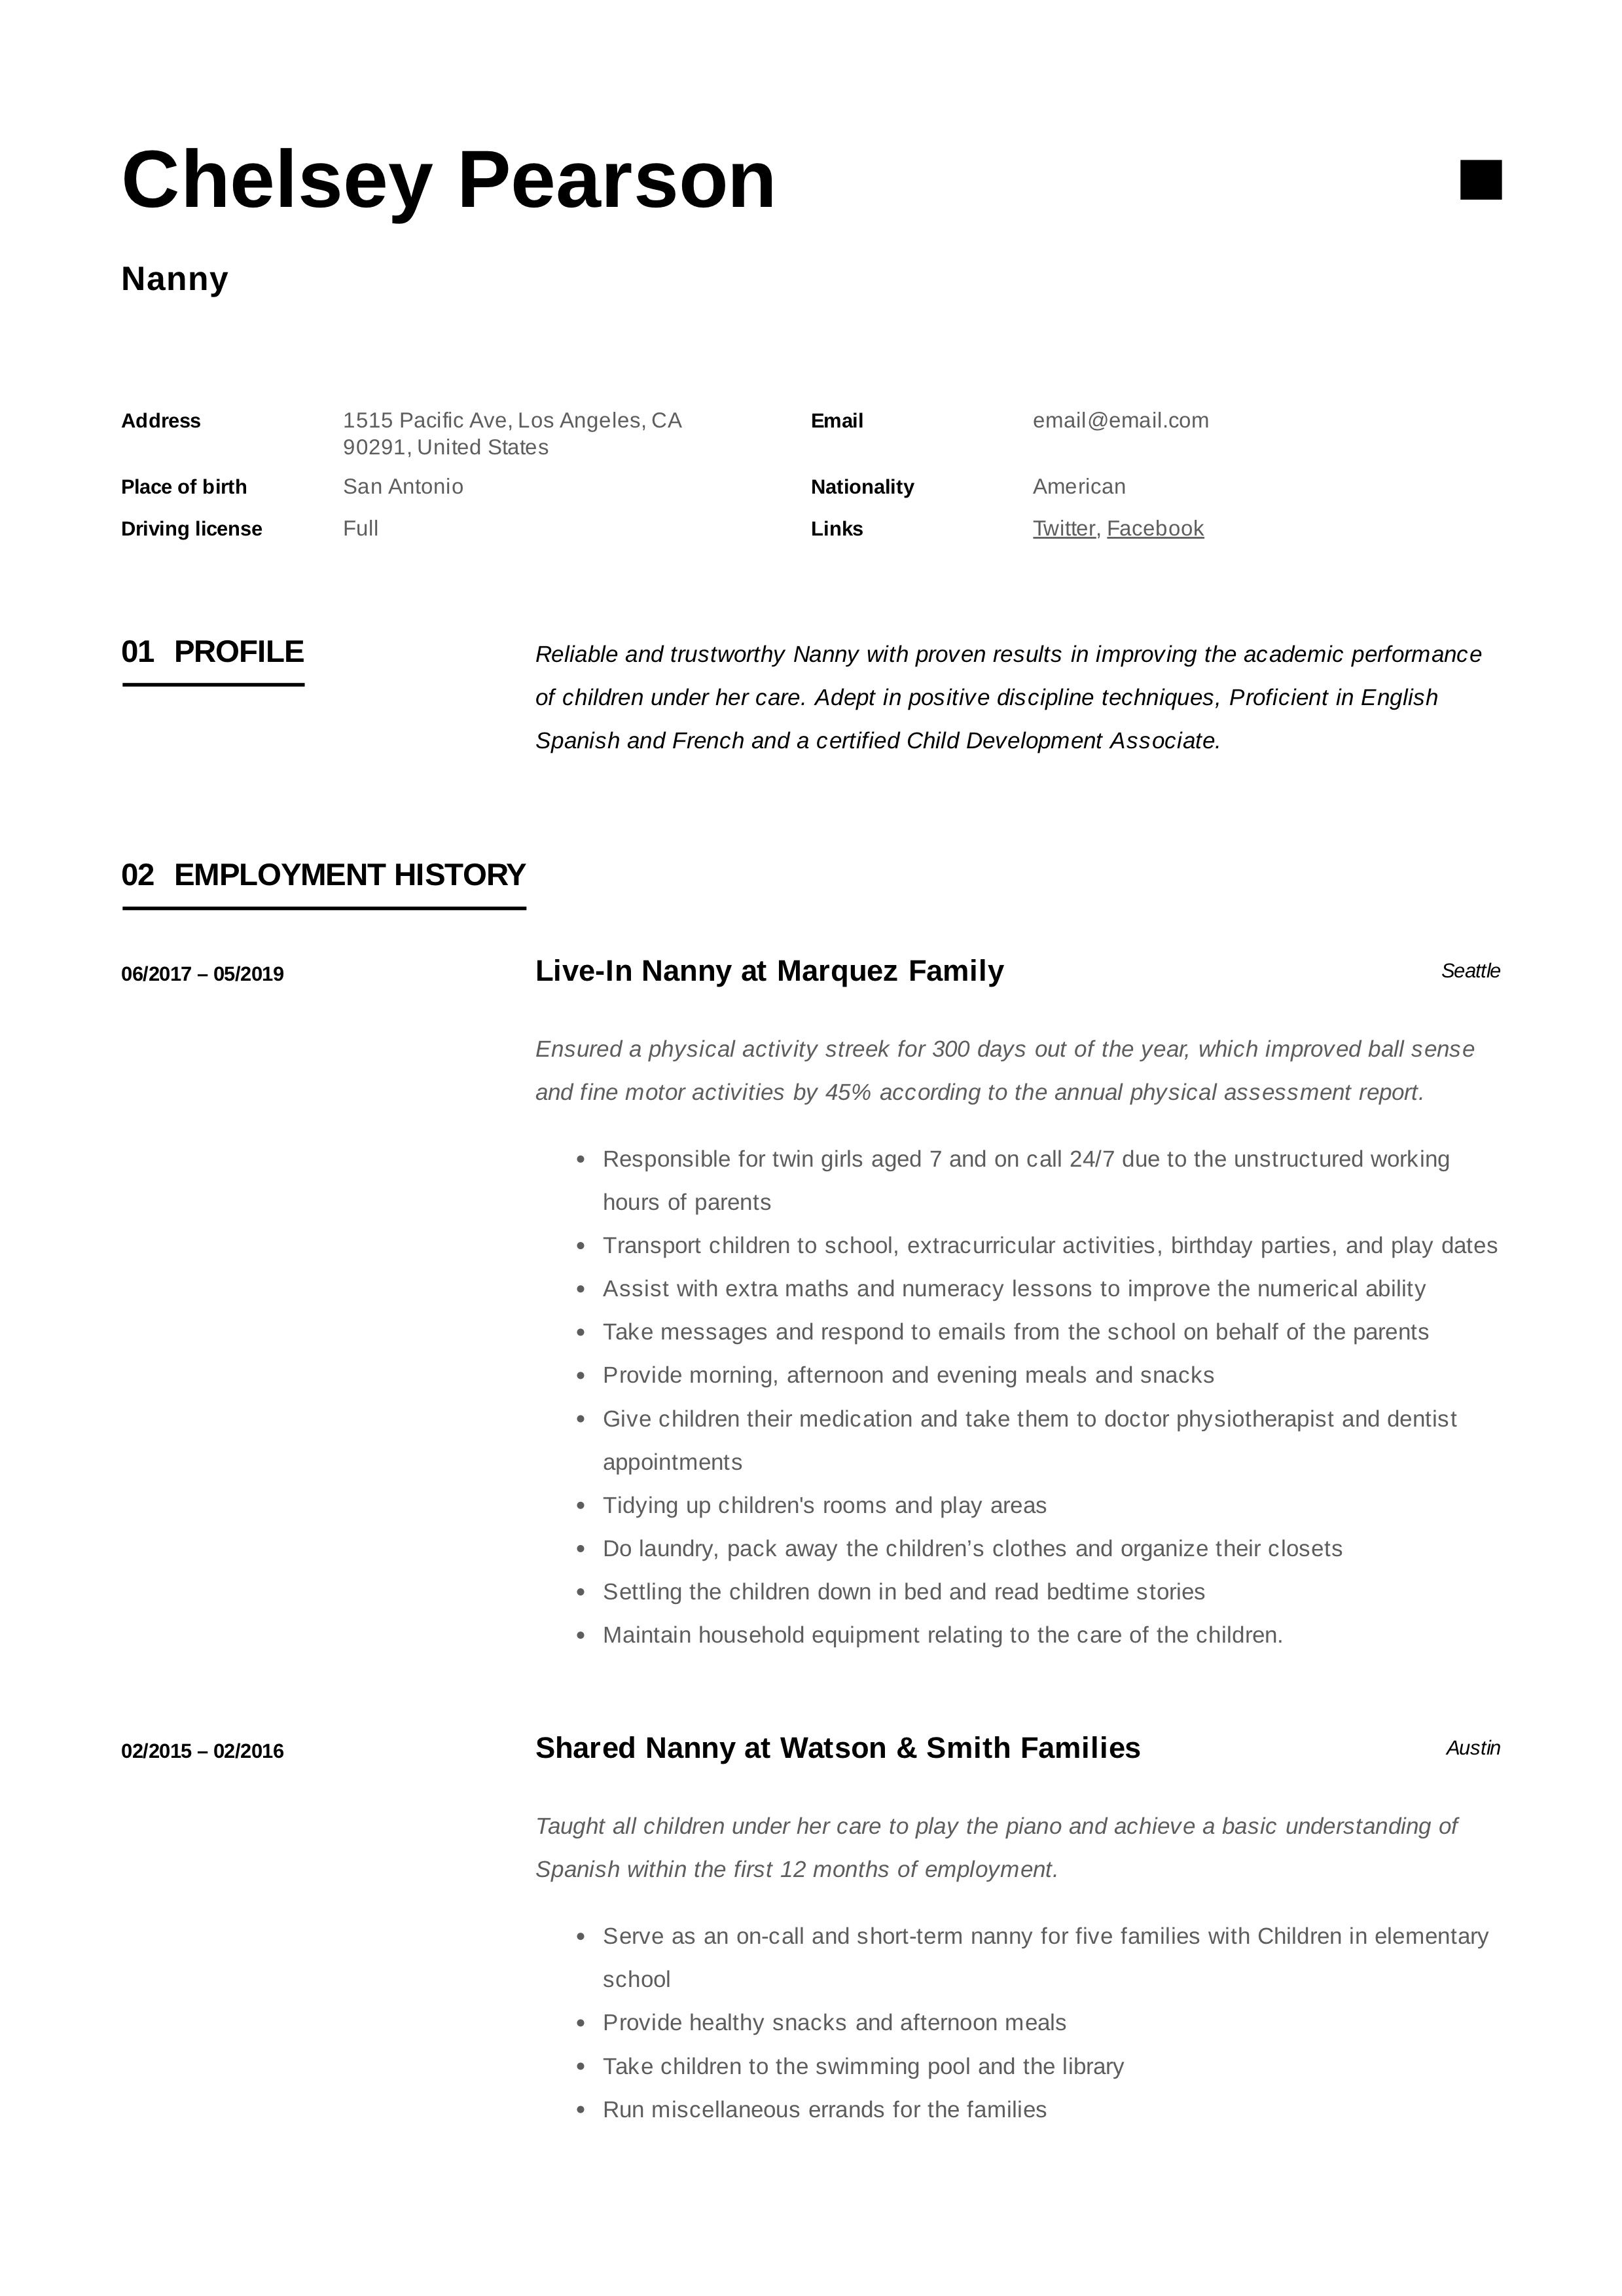 Nanny resume template in 2020 administrative assistant